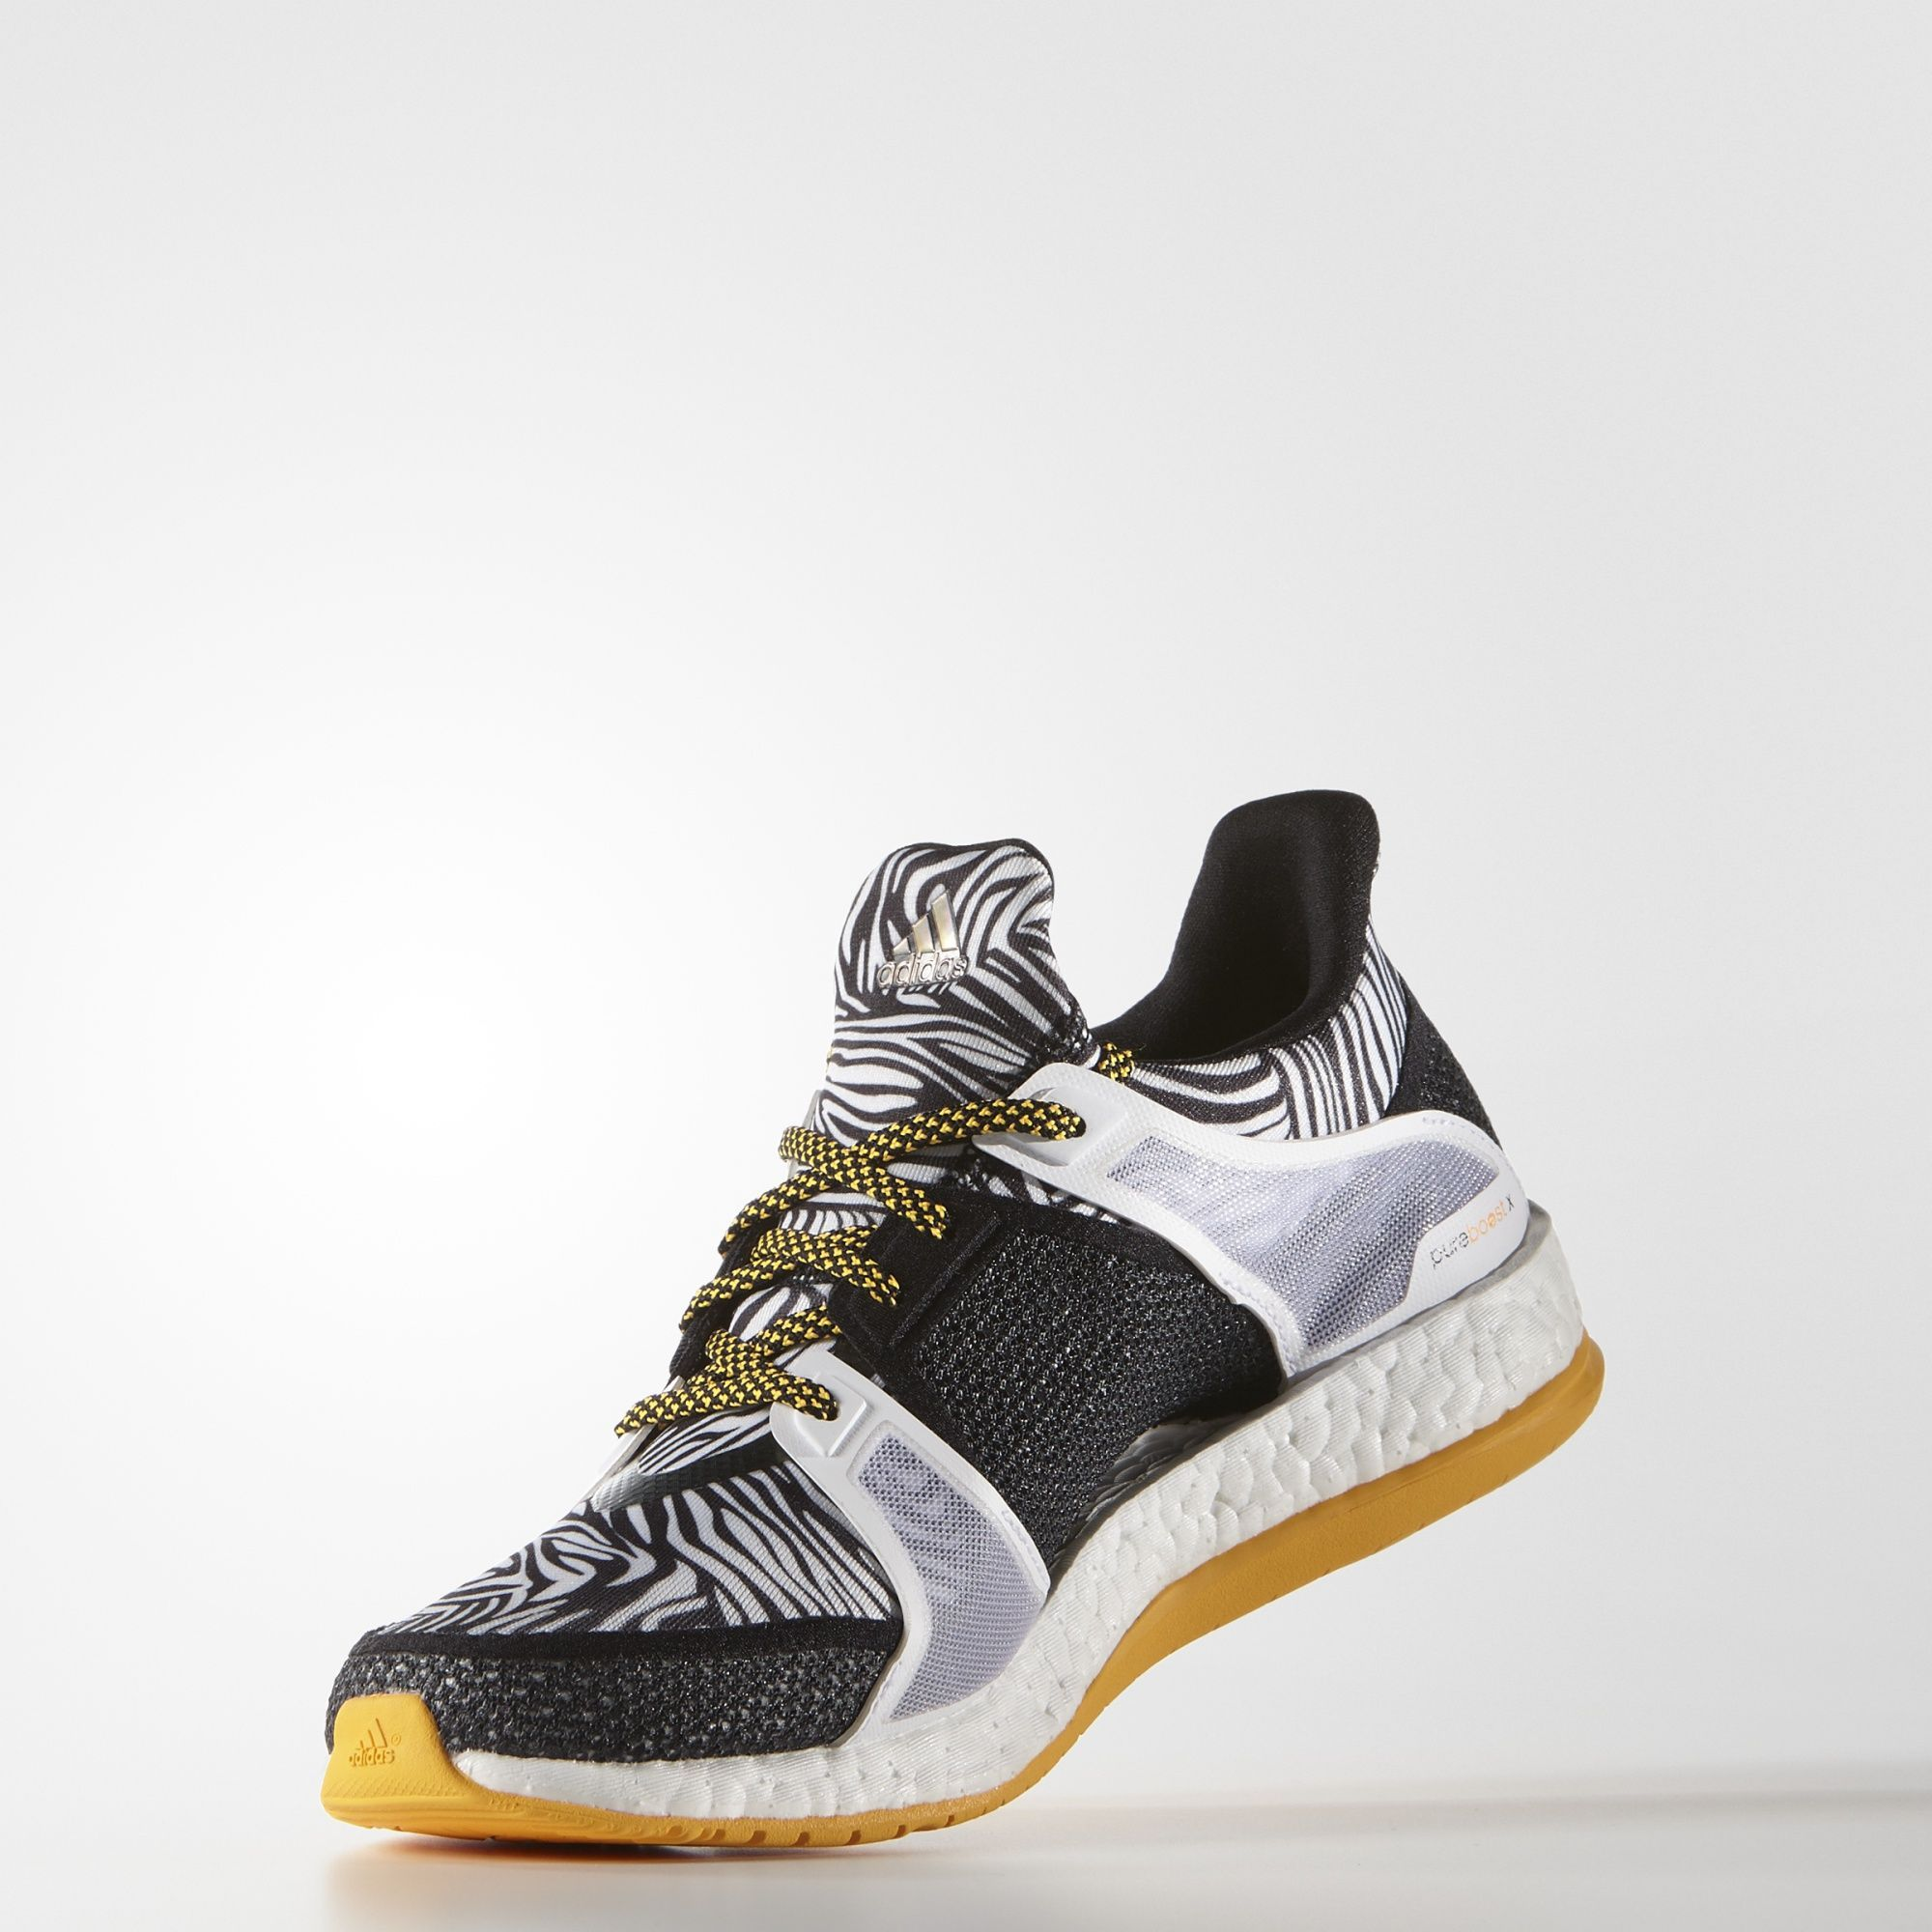 Adidas Pure Boost X Training Shoes Adidas Pure Boost Training Shoes Adidas Adidas Athletic Shoes